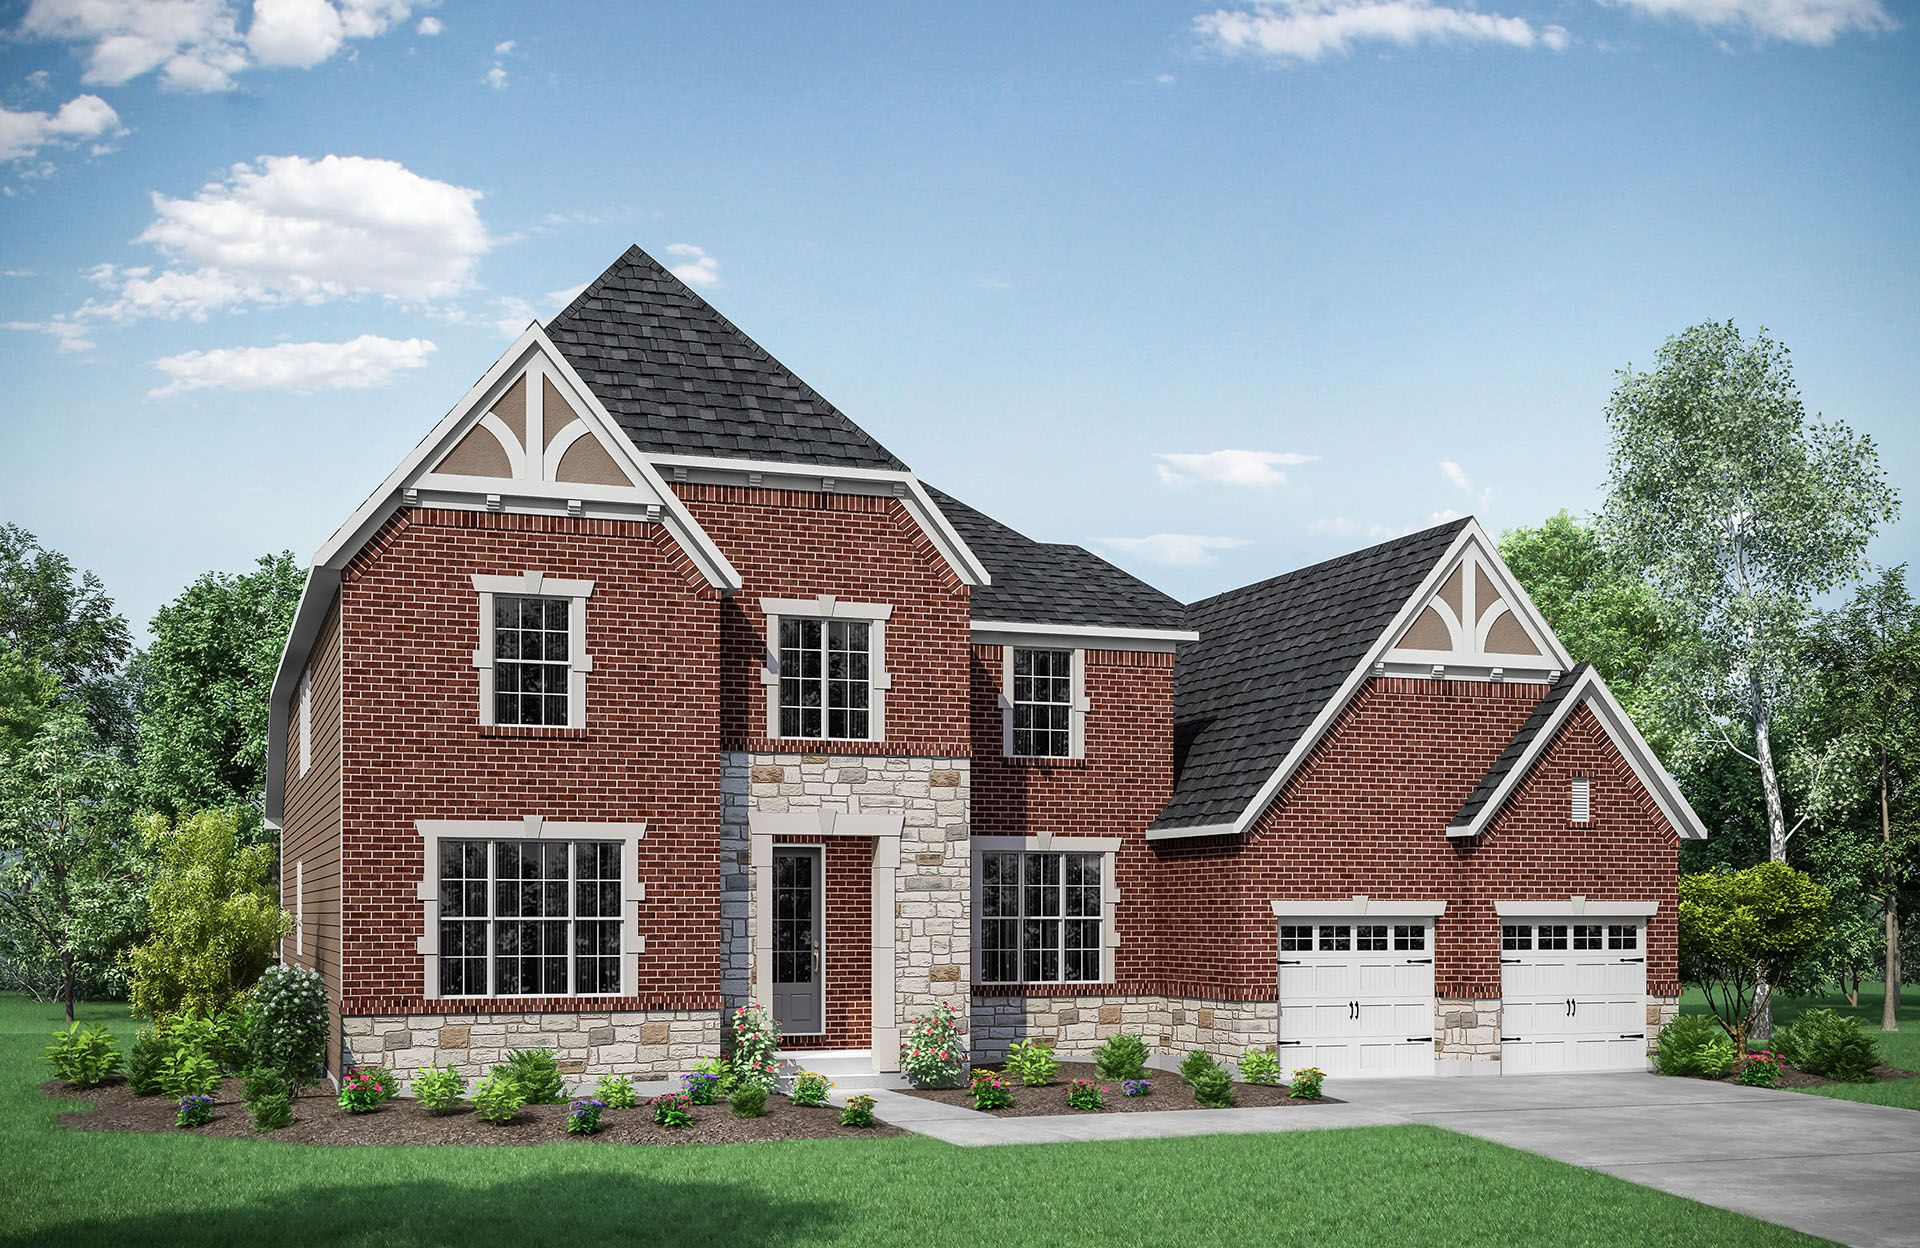 Single Family for Sale at Crestwood 1347 Prado Drive Union, Kentucky 41091 United States